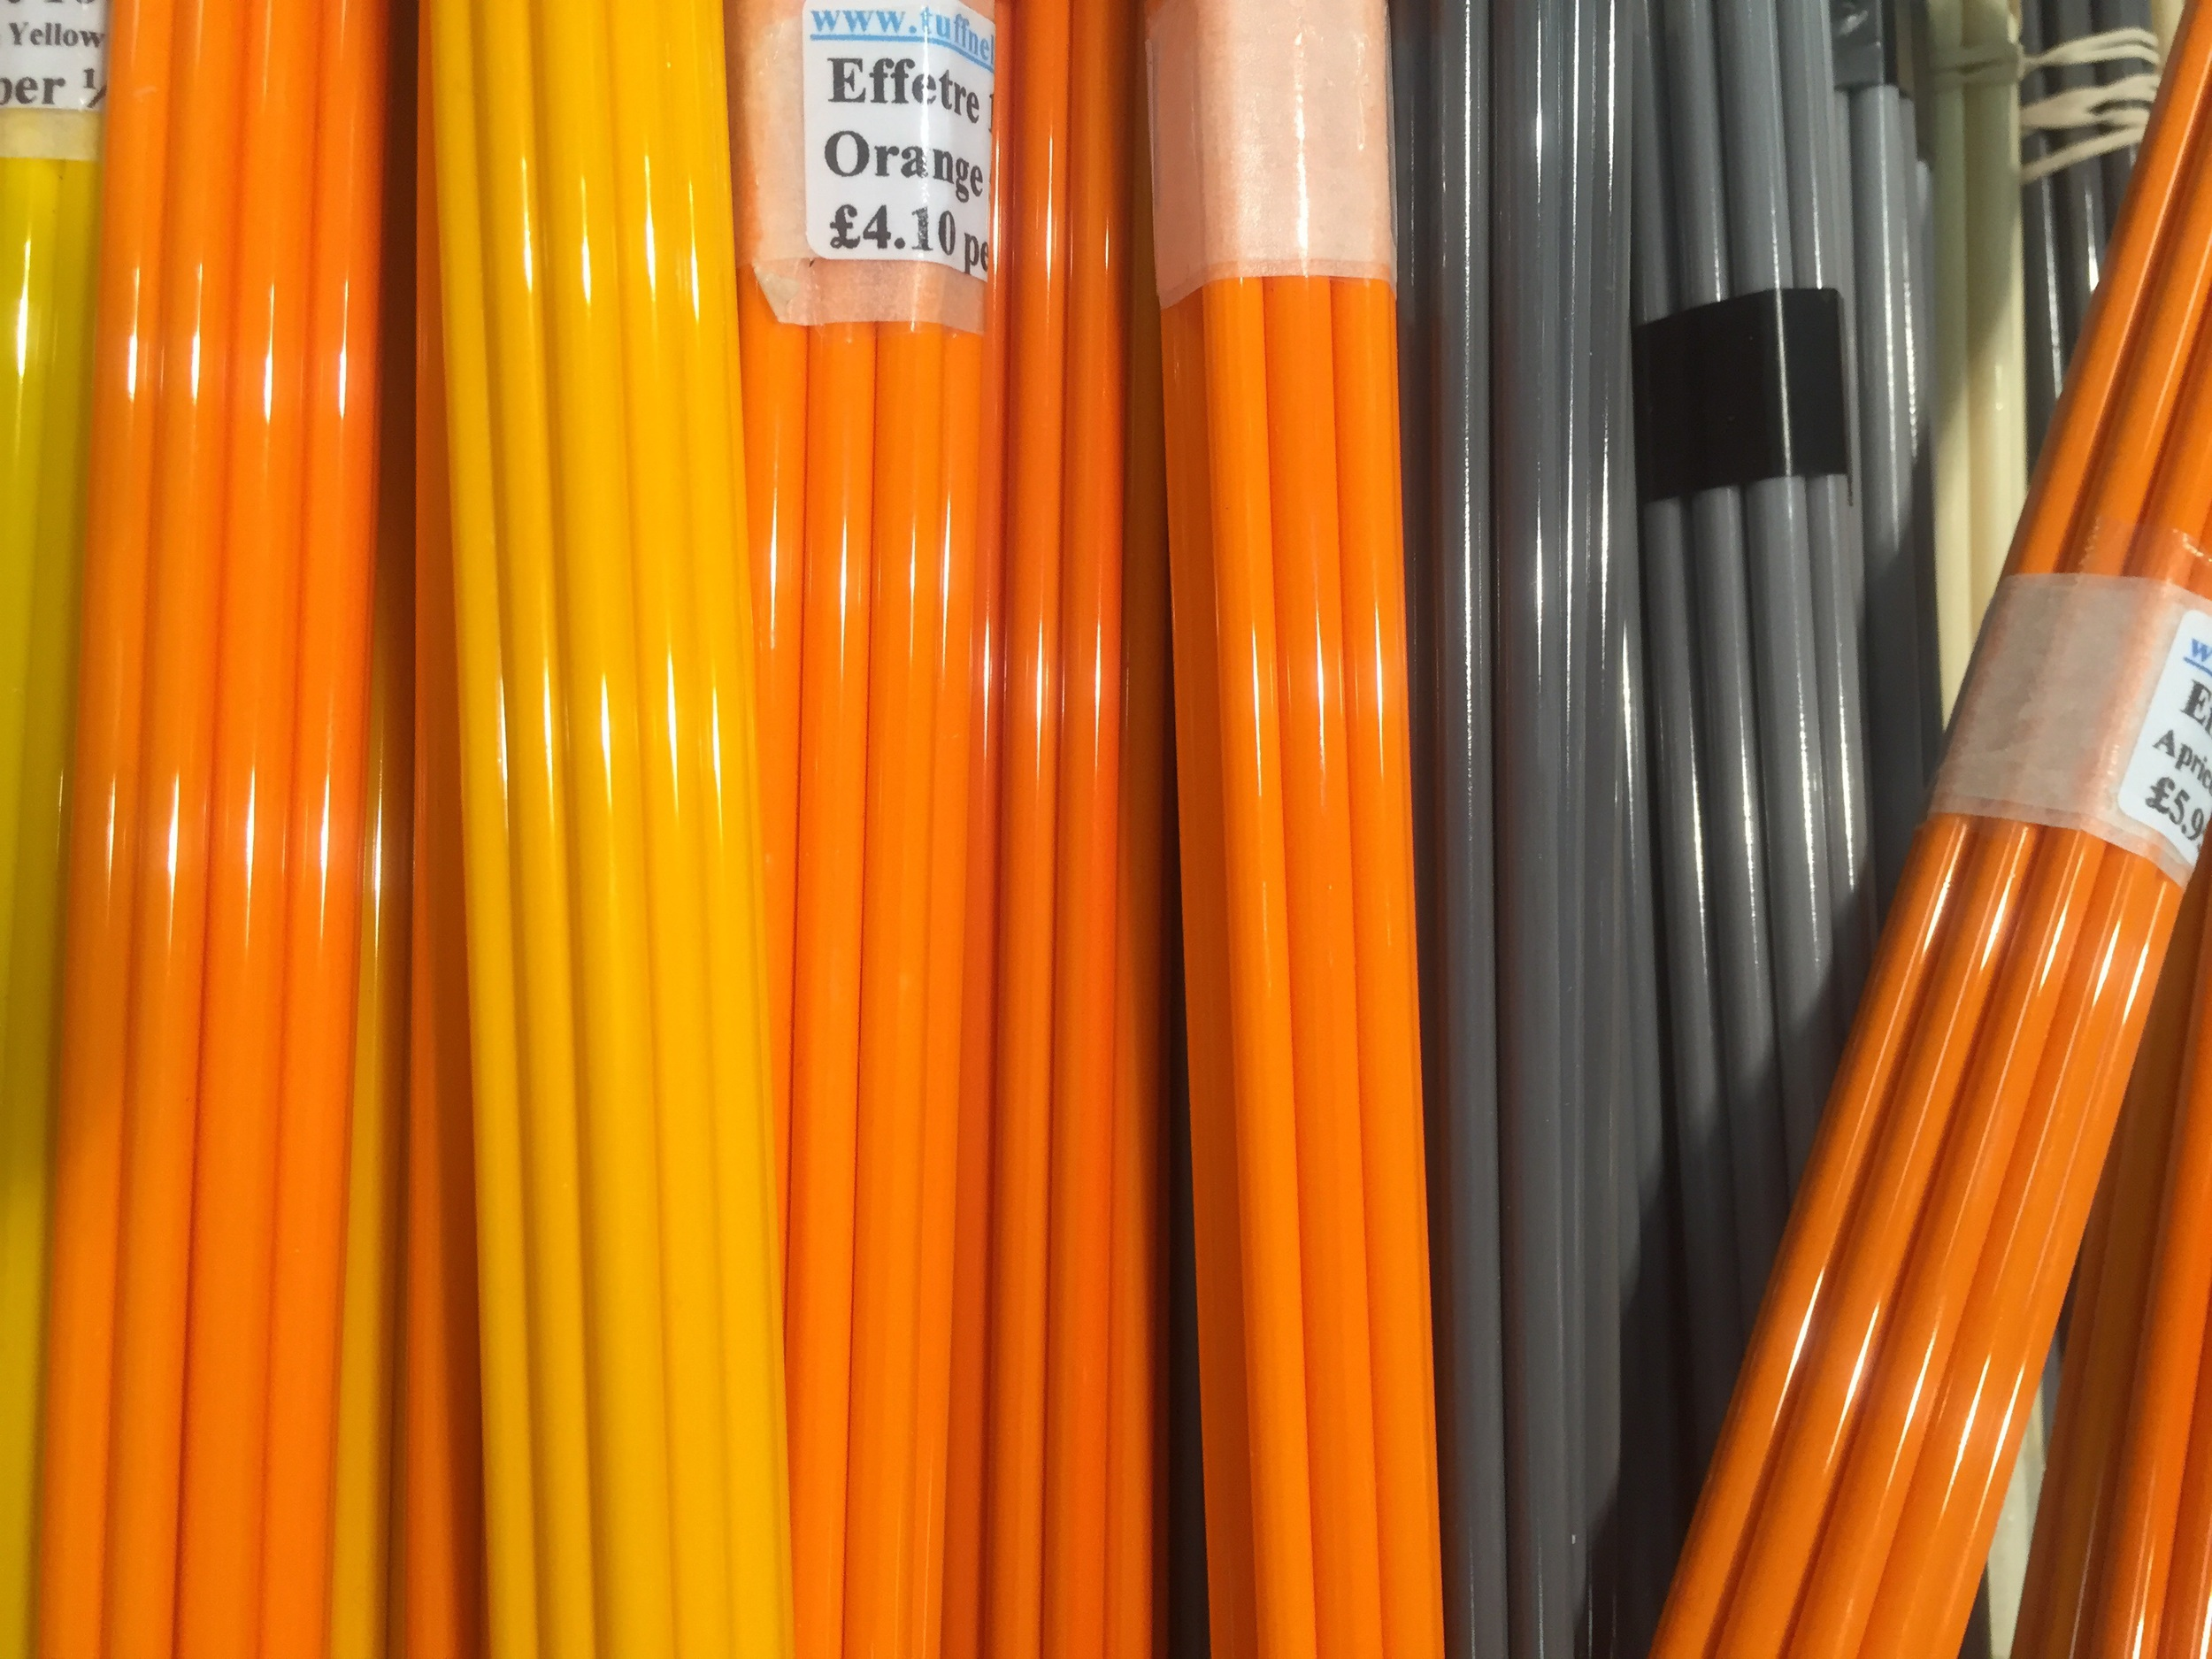 Mustards and Orange Effetre glass rods